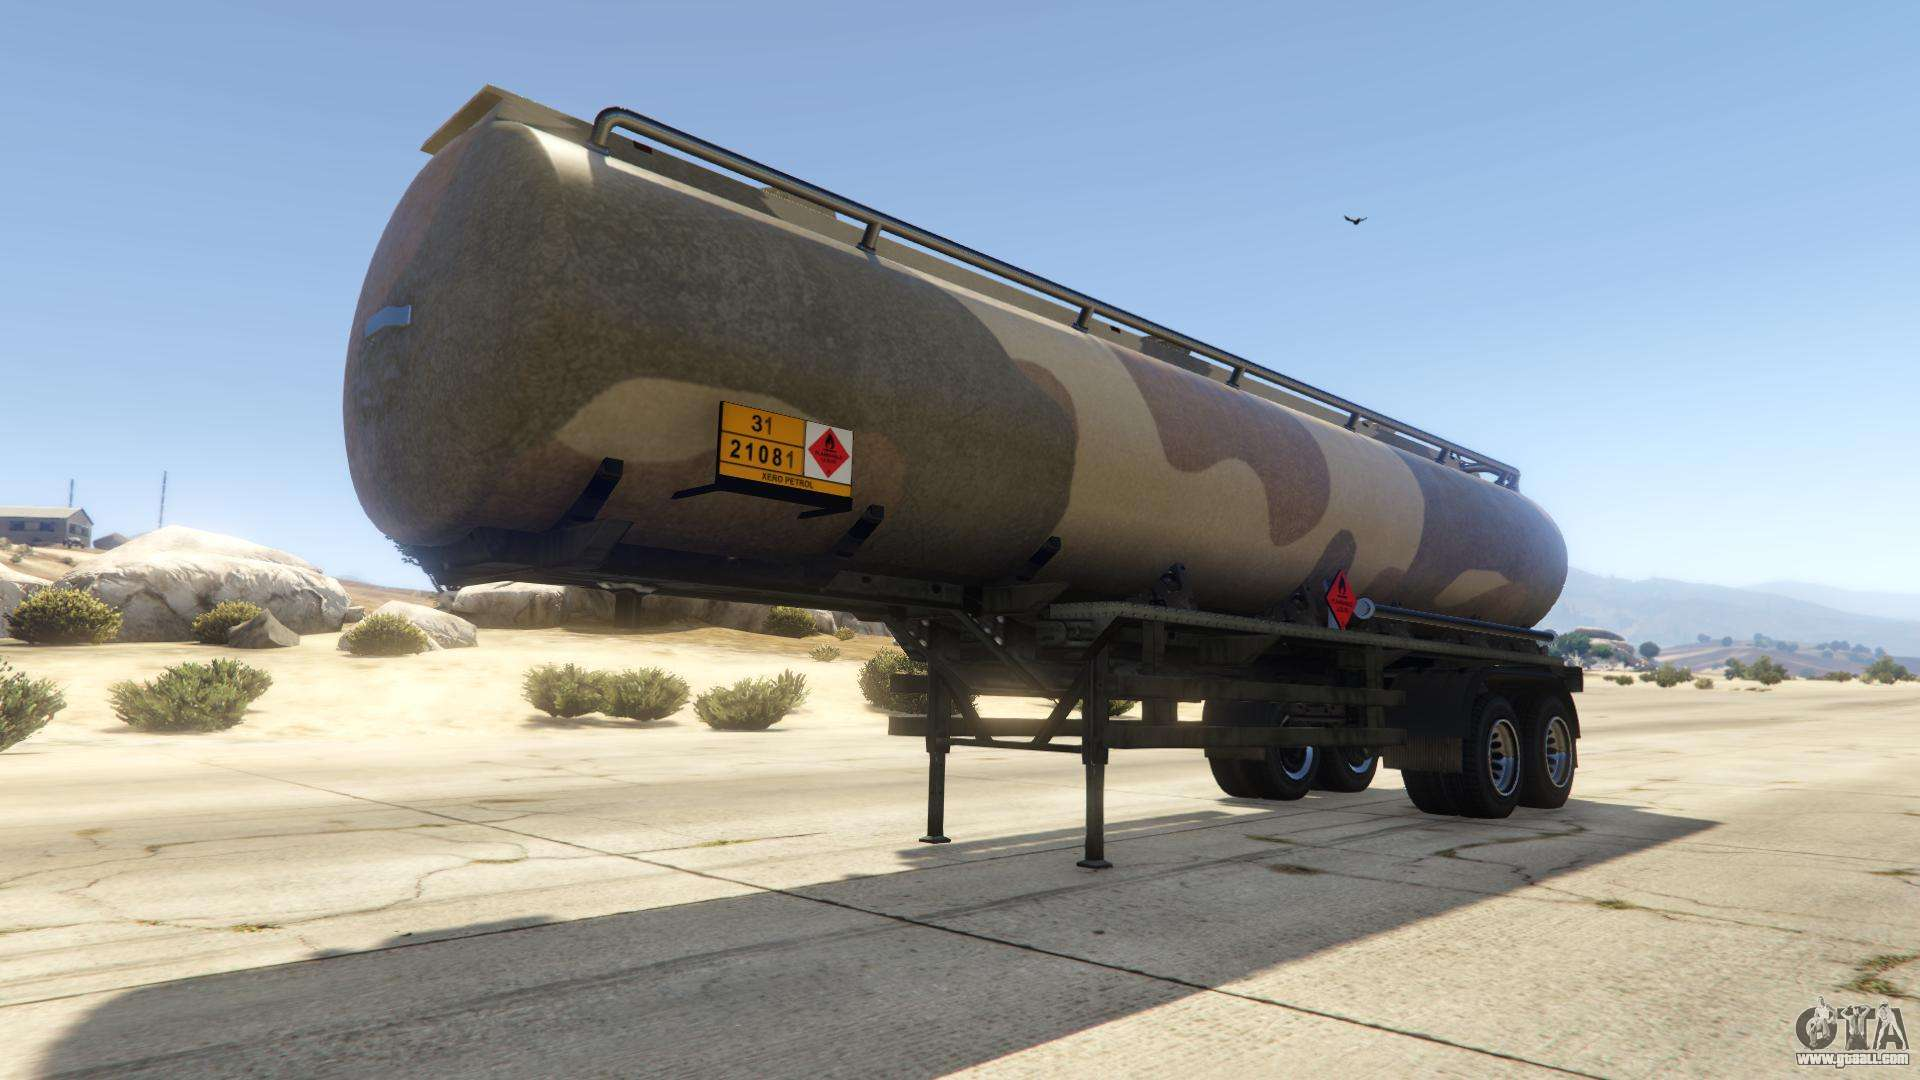 Army Tanker from GTA Online